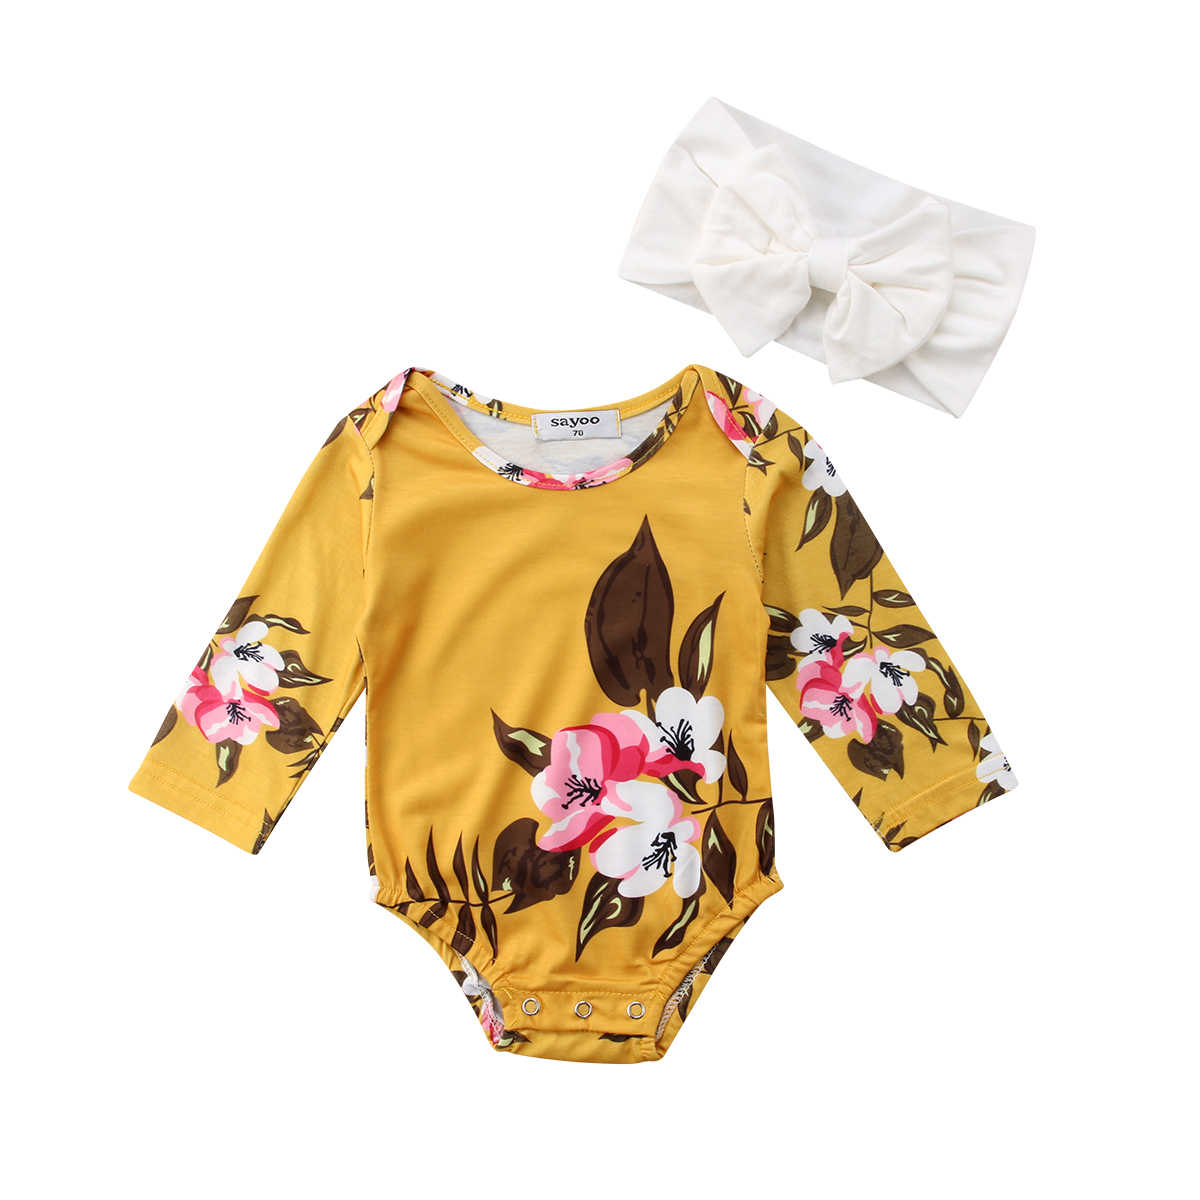 f7609930c7da Detail Feedback Questions about Newborn Toddler Baby Girls Floral ...